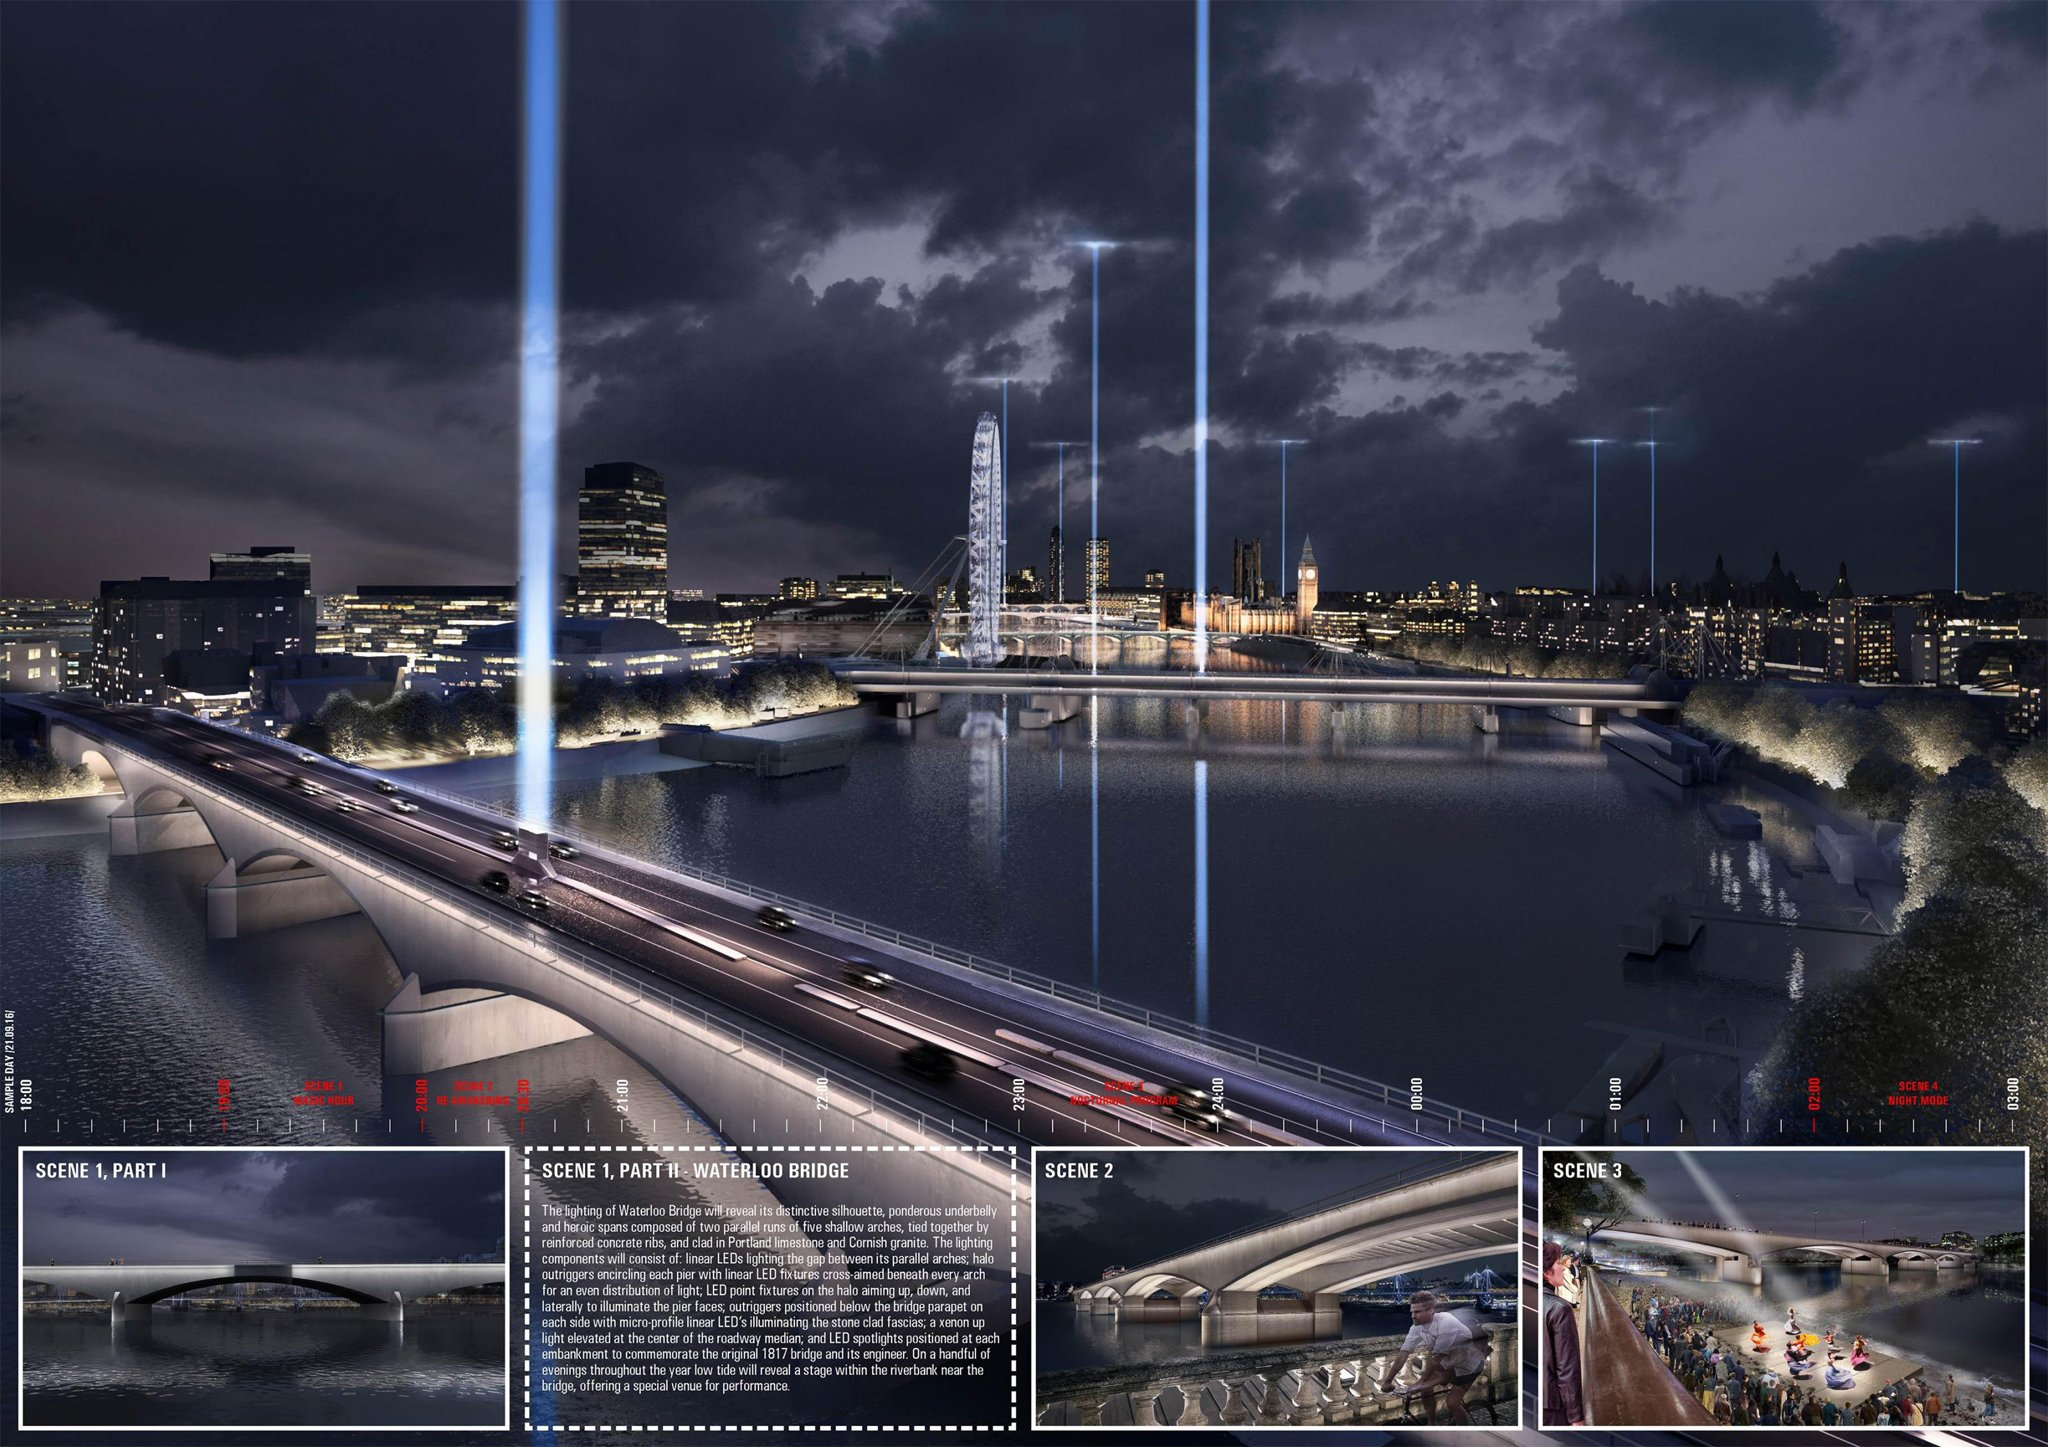 Synchronizing the City: Its Natural and Urban Rhythms (Diller Scofidio + Renfro with Oliver Beer, Arup, Copper Consultancy, L'Observatoire International, Penoyre & Prasad, Jennifer Tipton and Transsolar ) (courtesy: The Illuminated River)